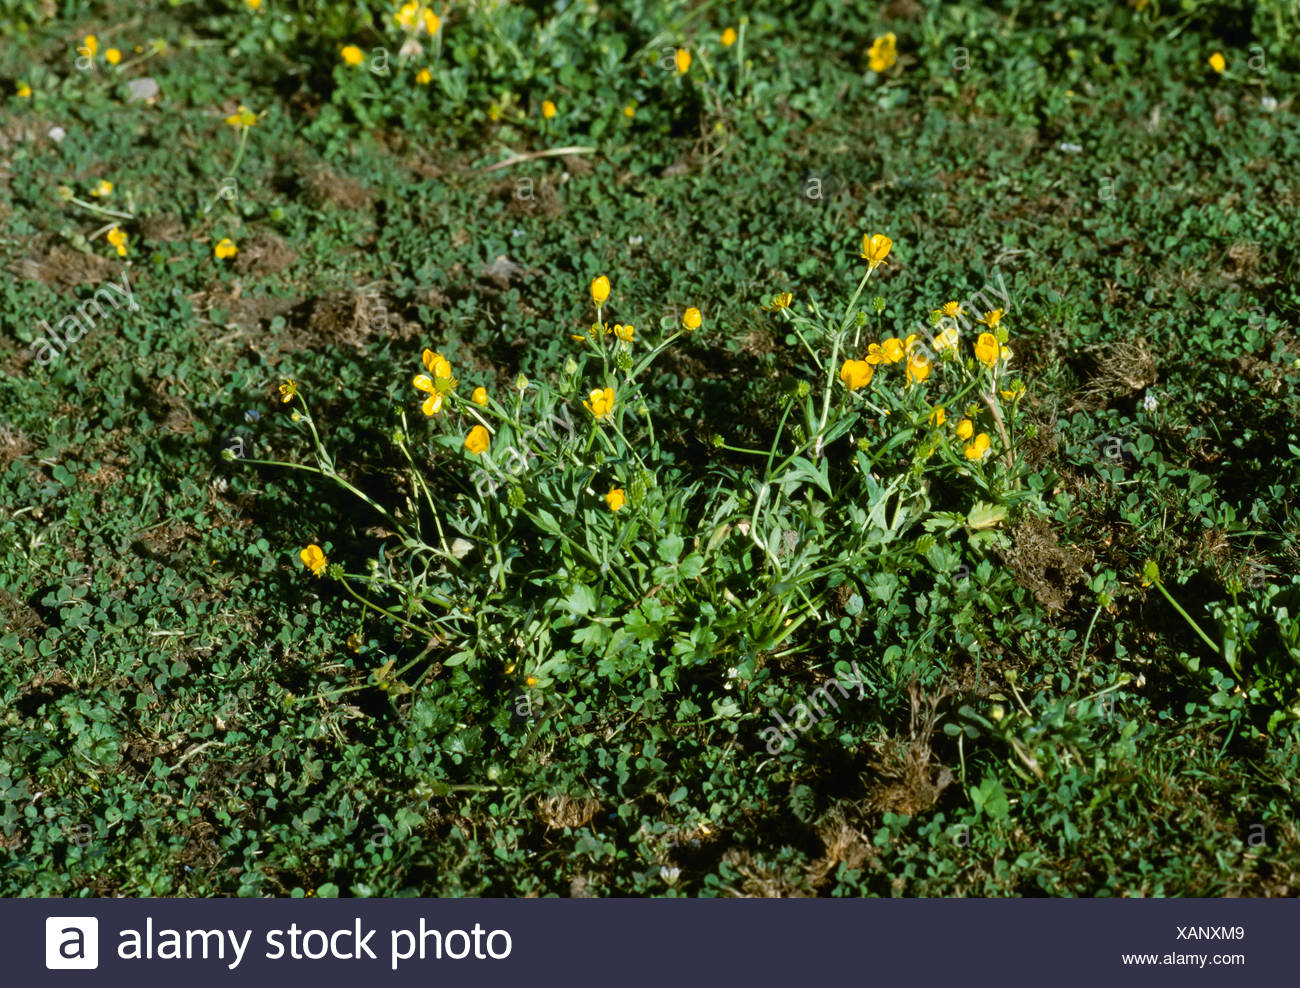 Agriculture - Weeds, Hairy Buttercup (Ranunculus sardous), flowering plant / California, USA. - Stock Image